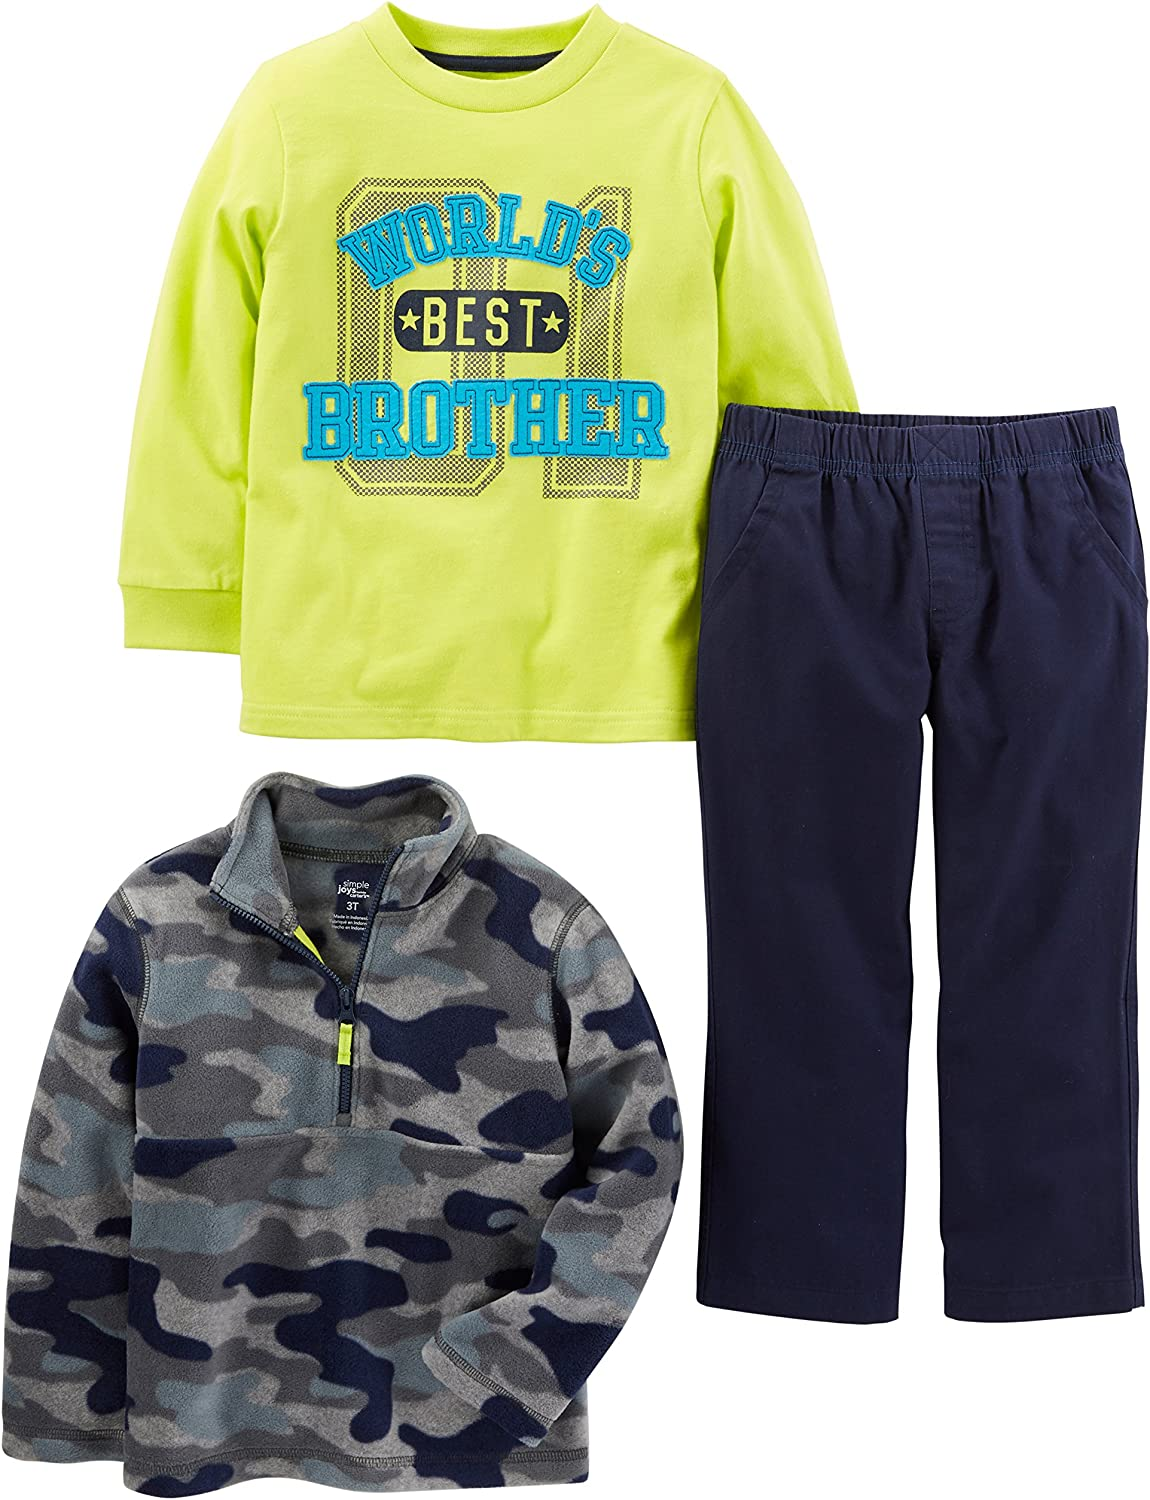 Long-Sleeve Shirt and Woven Pant Playwear Set Simple Joys by Carters Baby and Toddler Boys 3-Piece Fleece Jacket